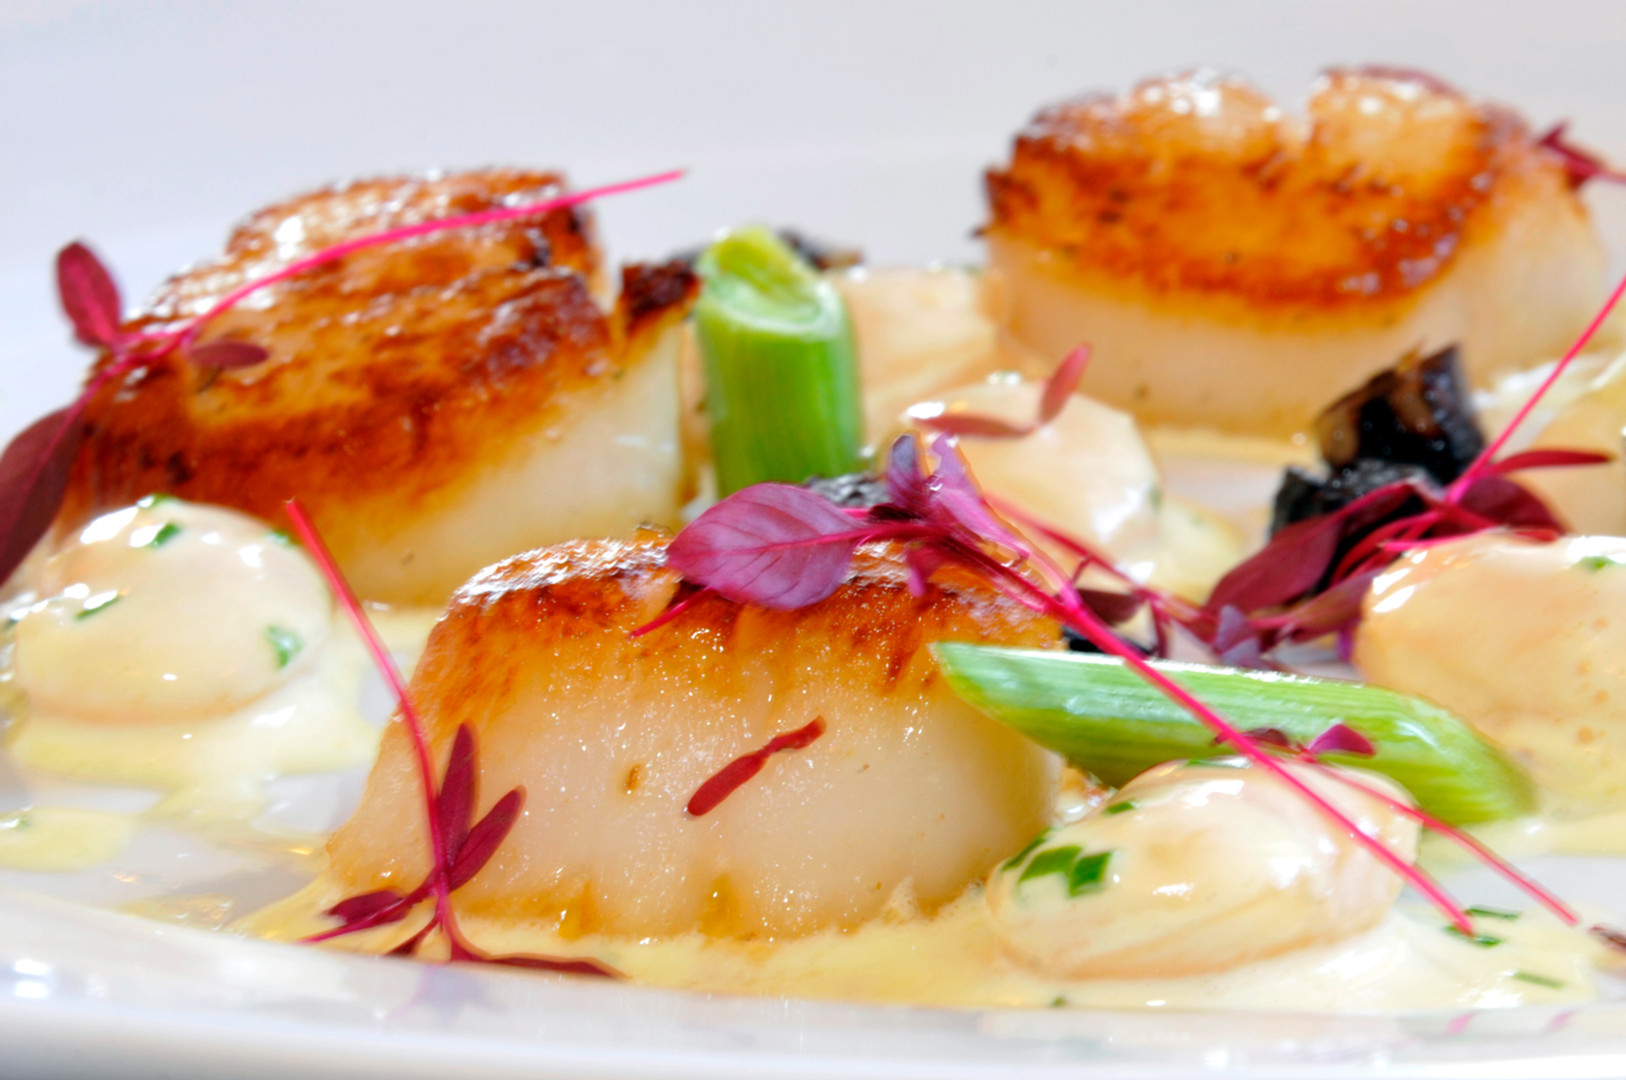 Scallops-Cropped-HR.jpg